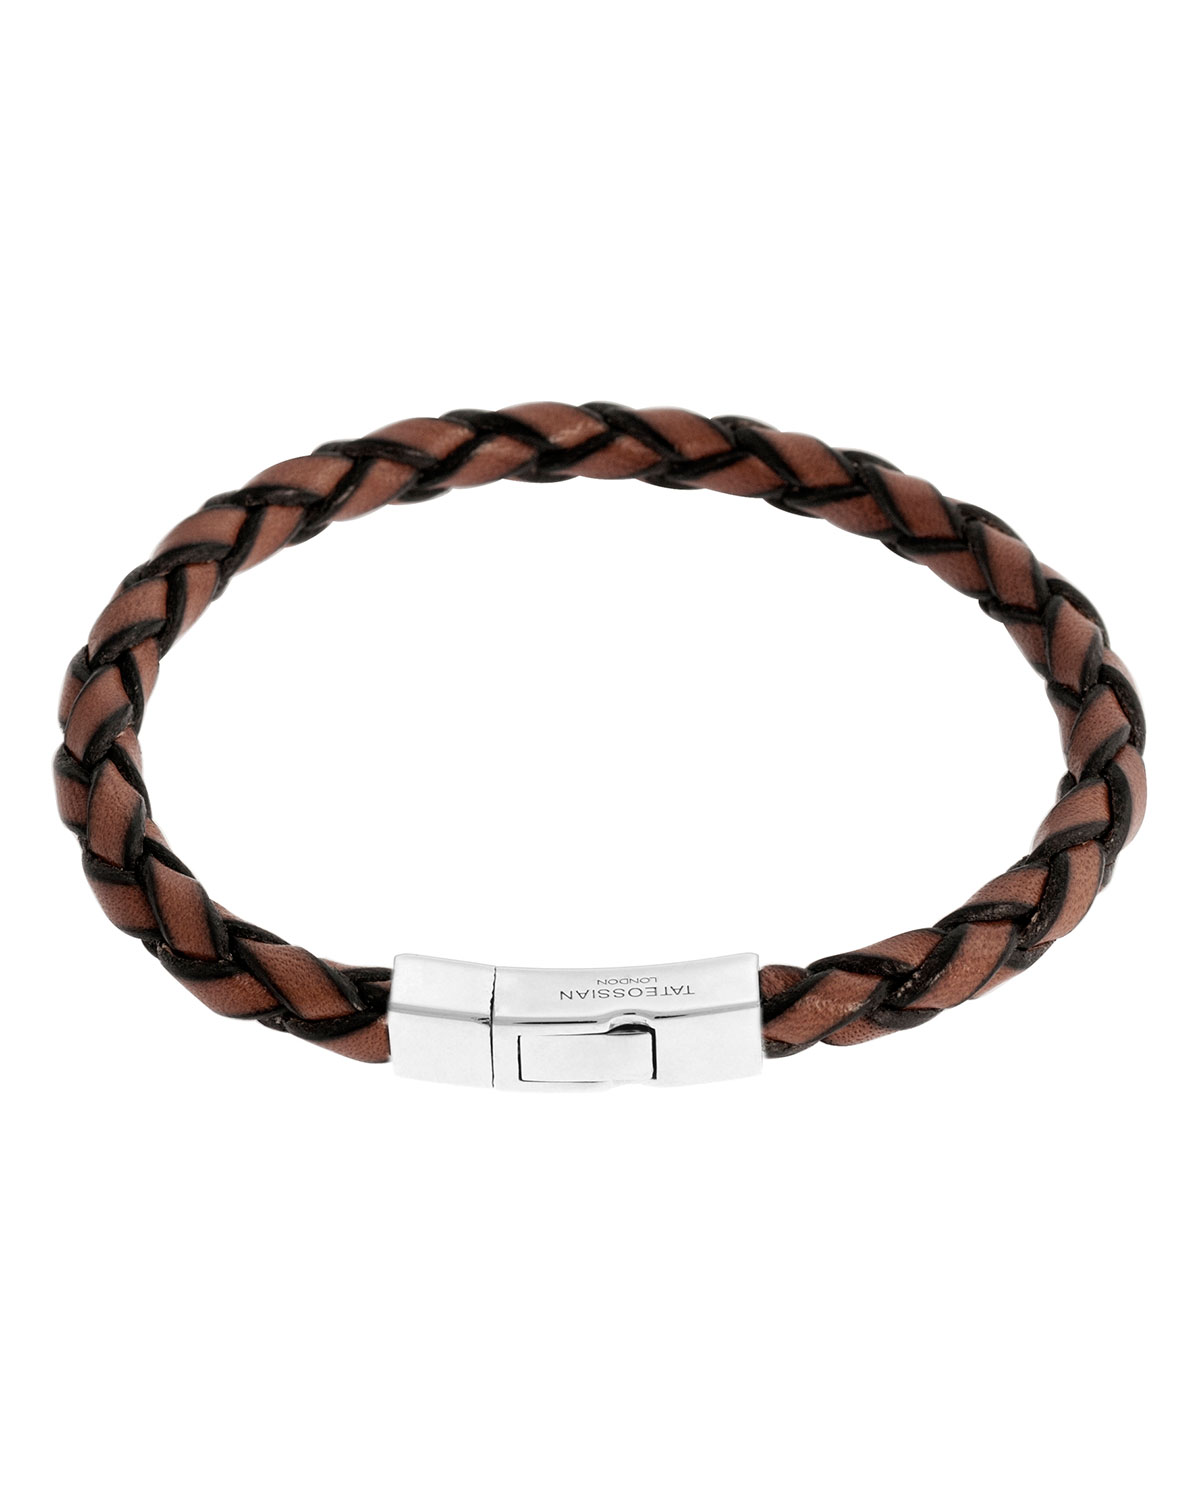 Marco Dal Maso Mens Woven Leather Bracelet w/ 18k Gold-Plated Clasp, Brown